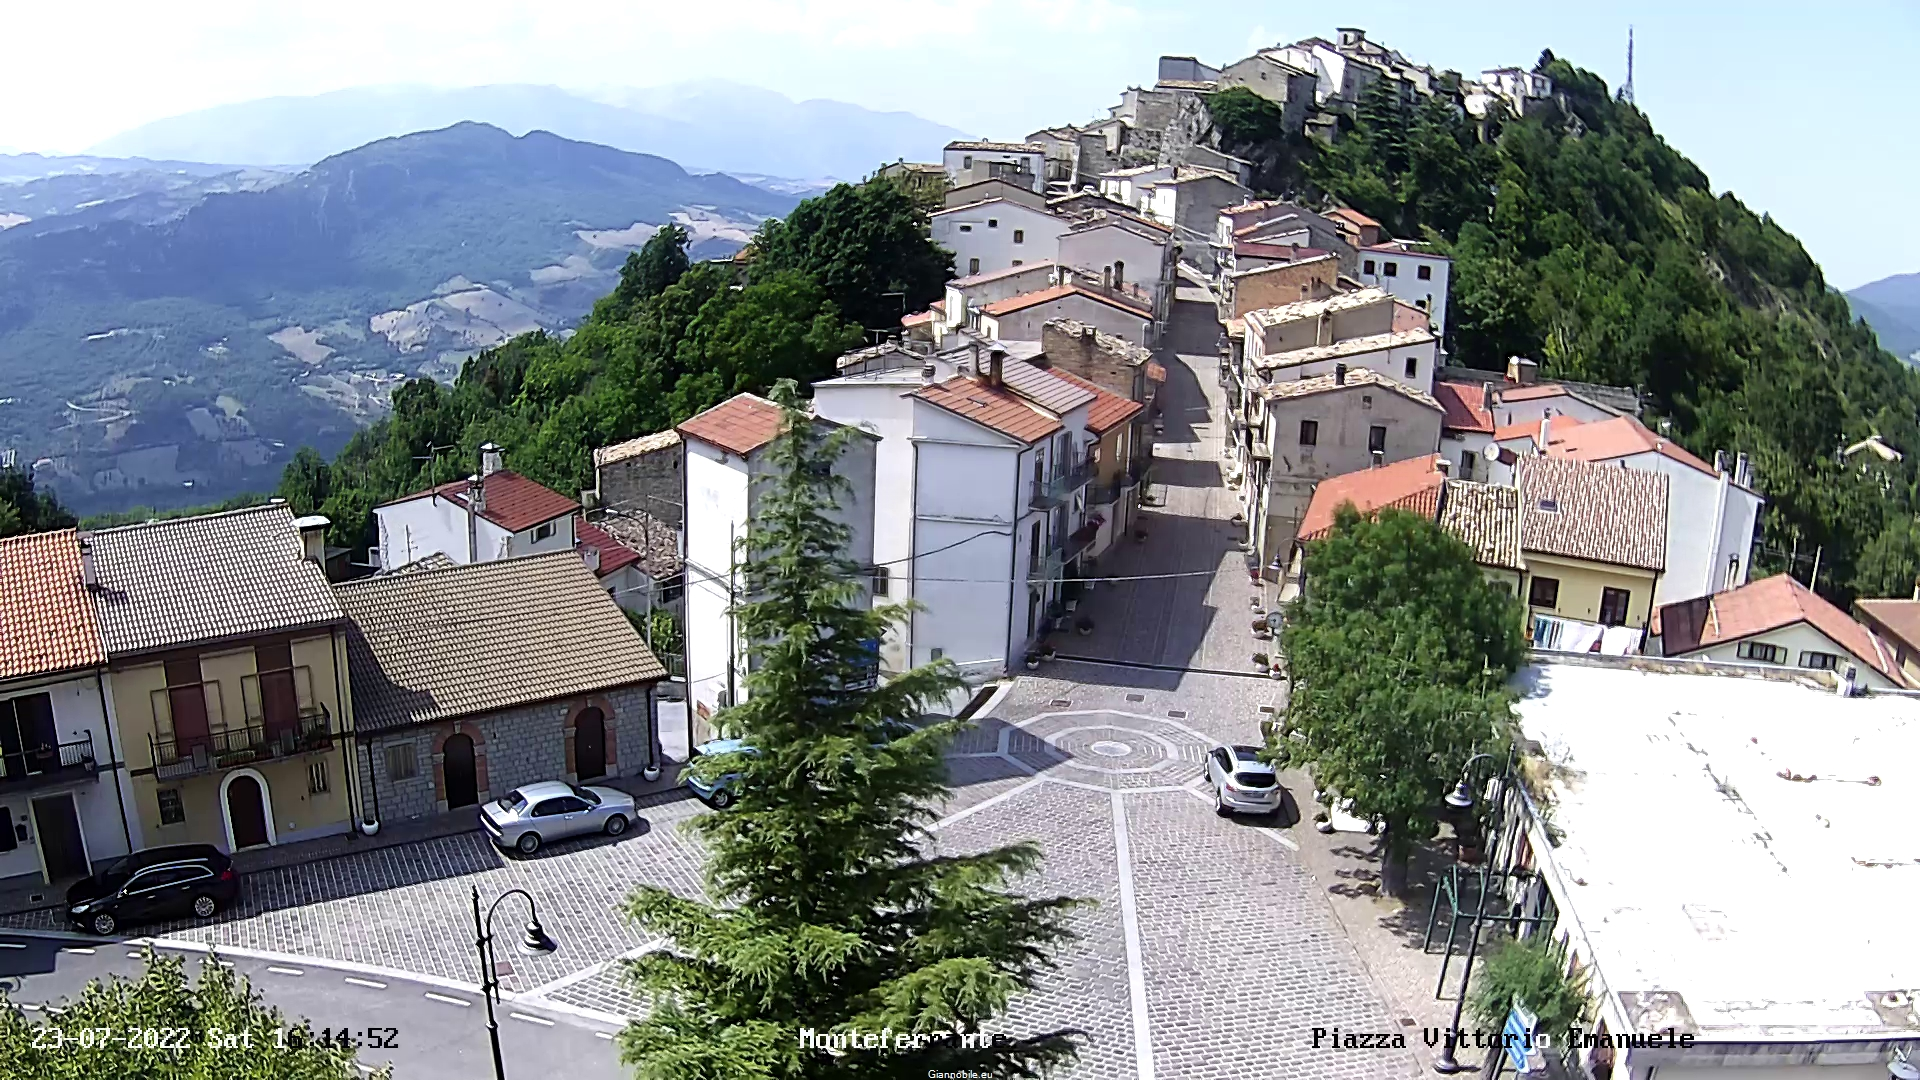 Webcam monteferrante